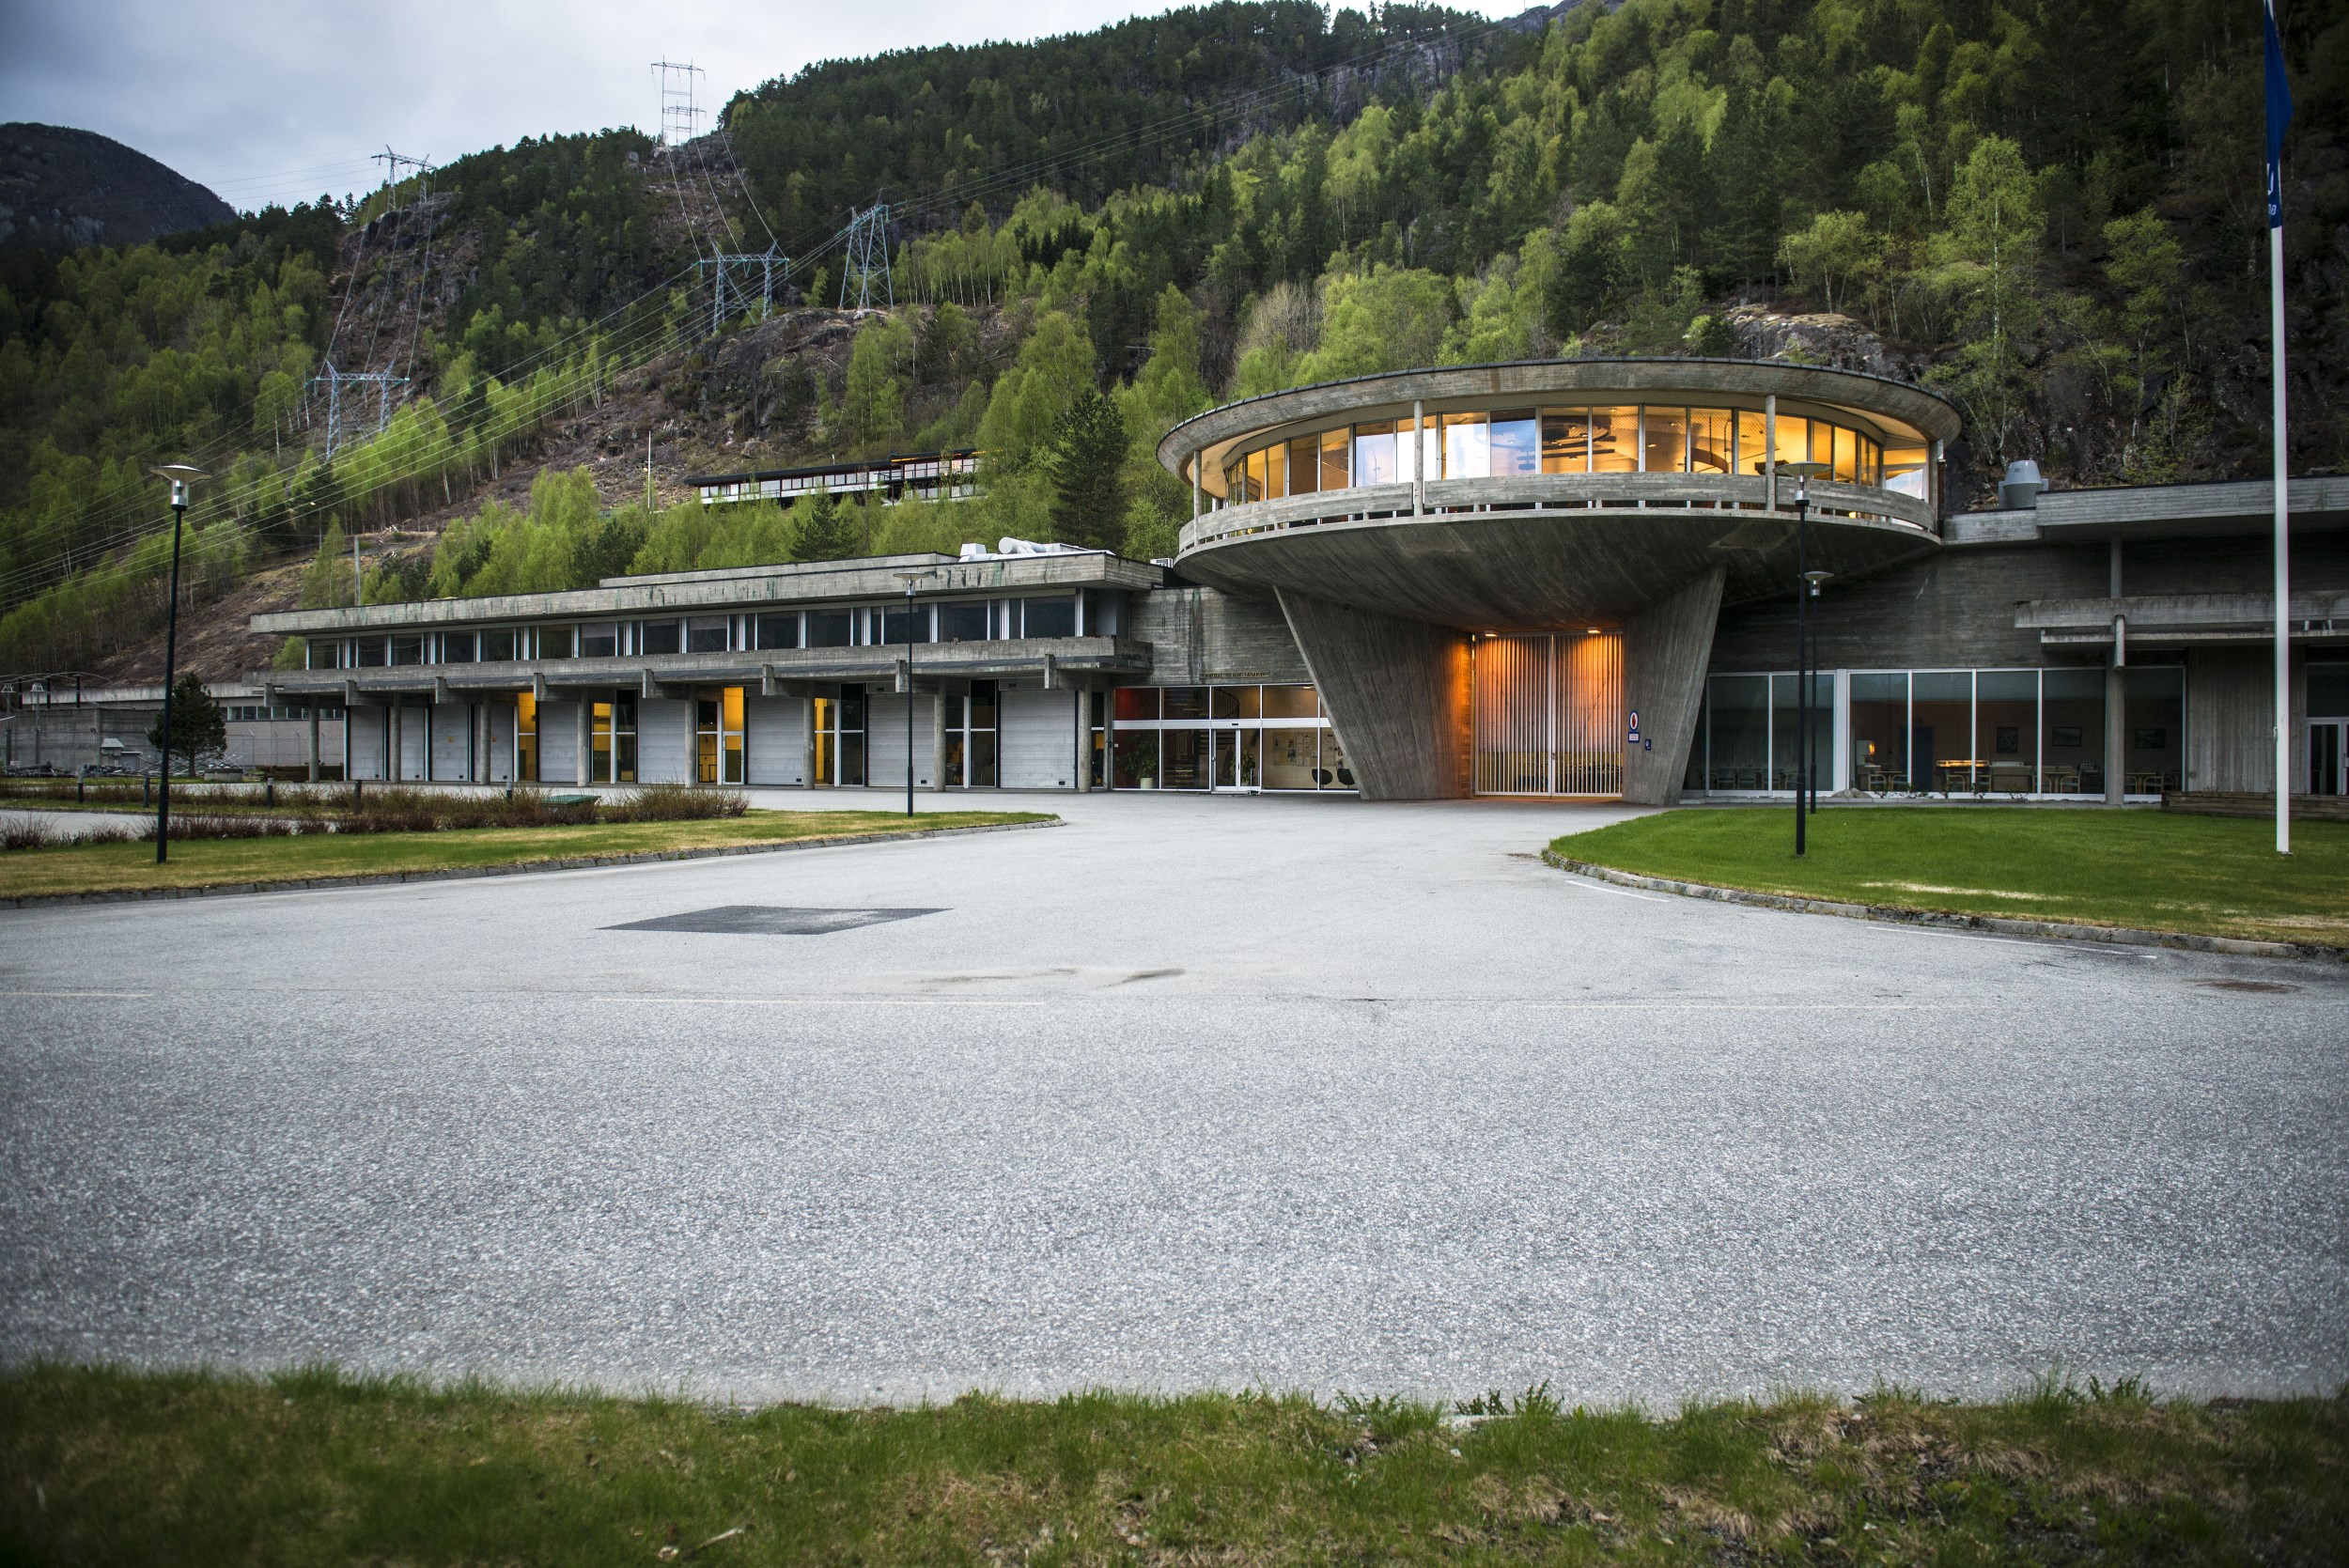 Picture of Geir Grung architecture at Nesflaten, National Scenic Route Ryfylke